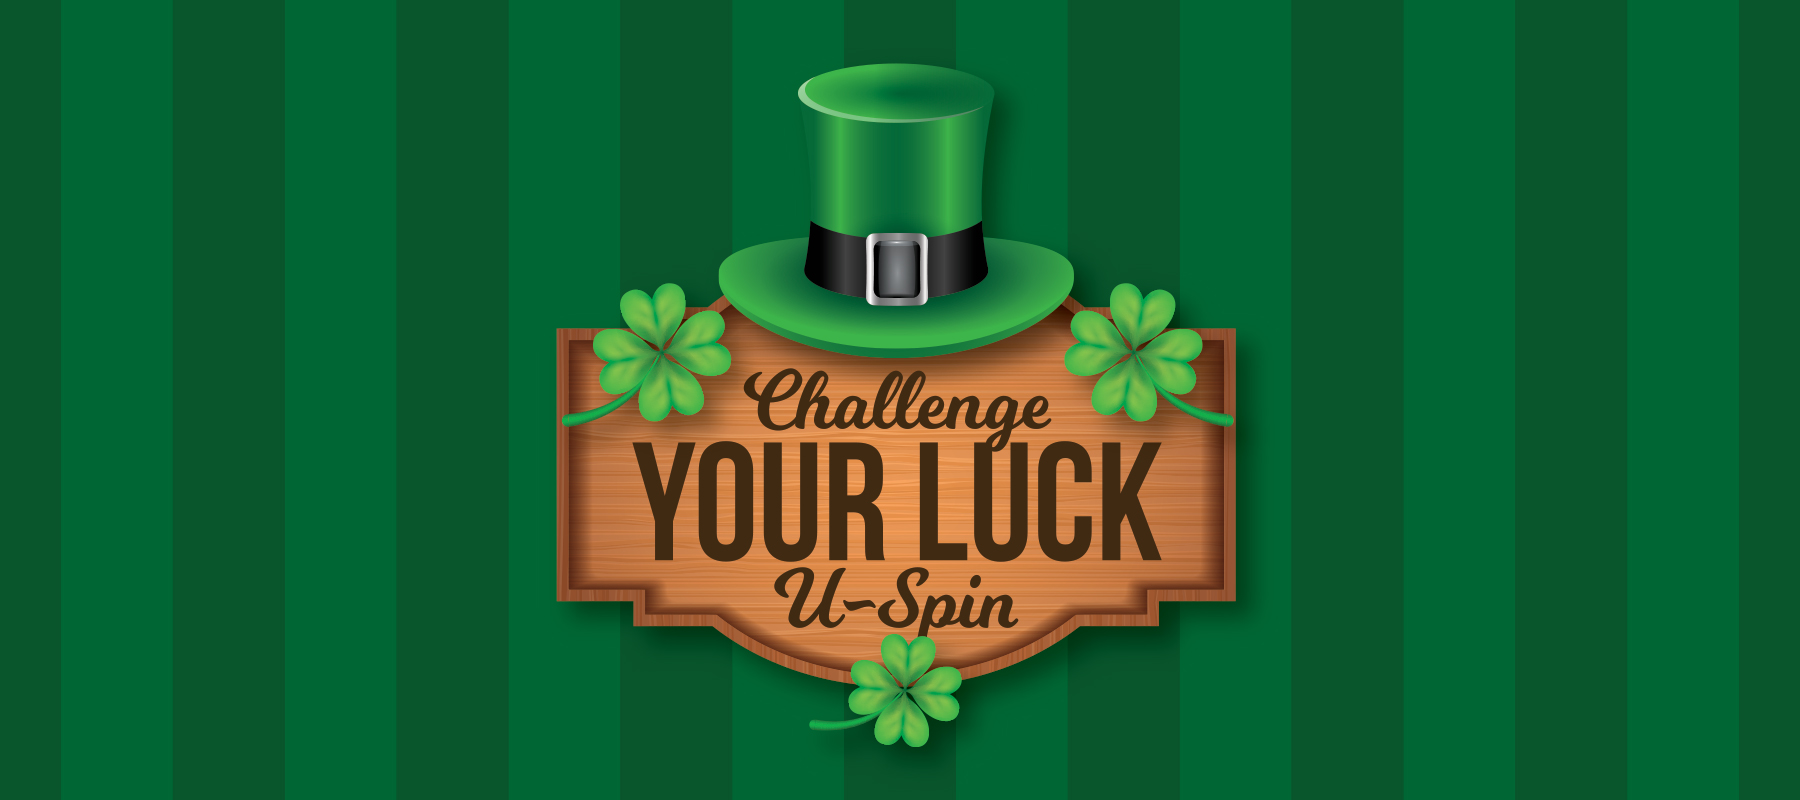 Challenge Your Luck U-Spin